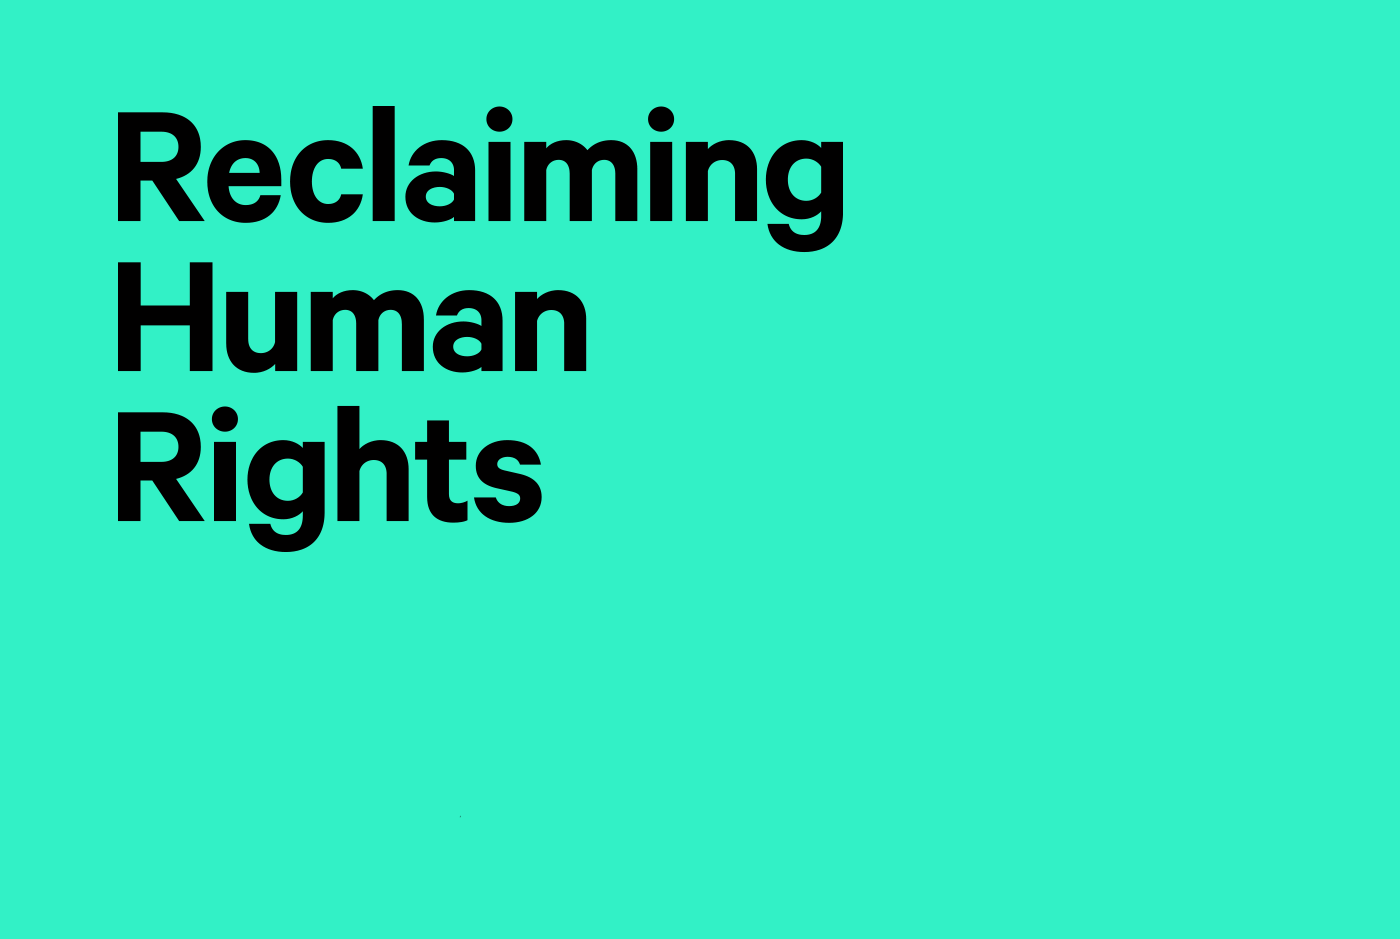 Reclaiming human rights